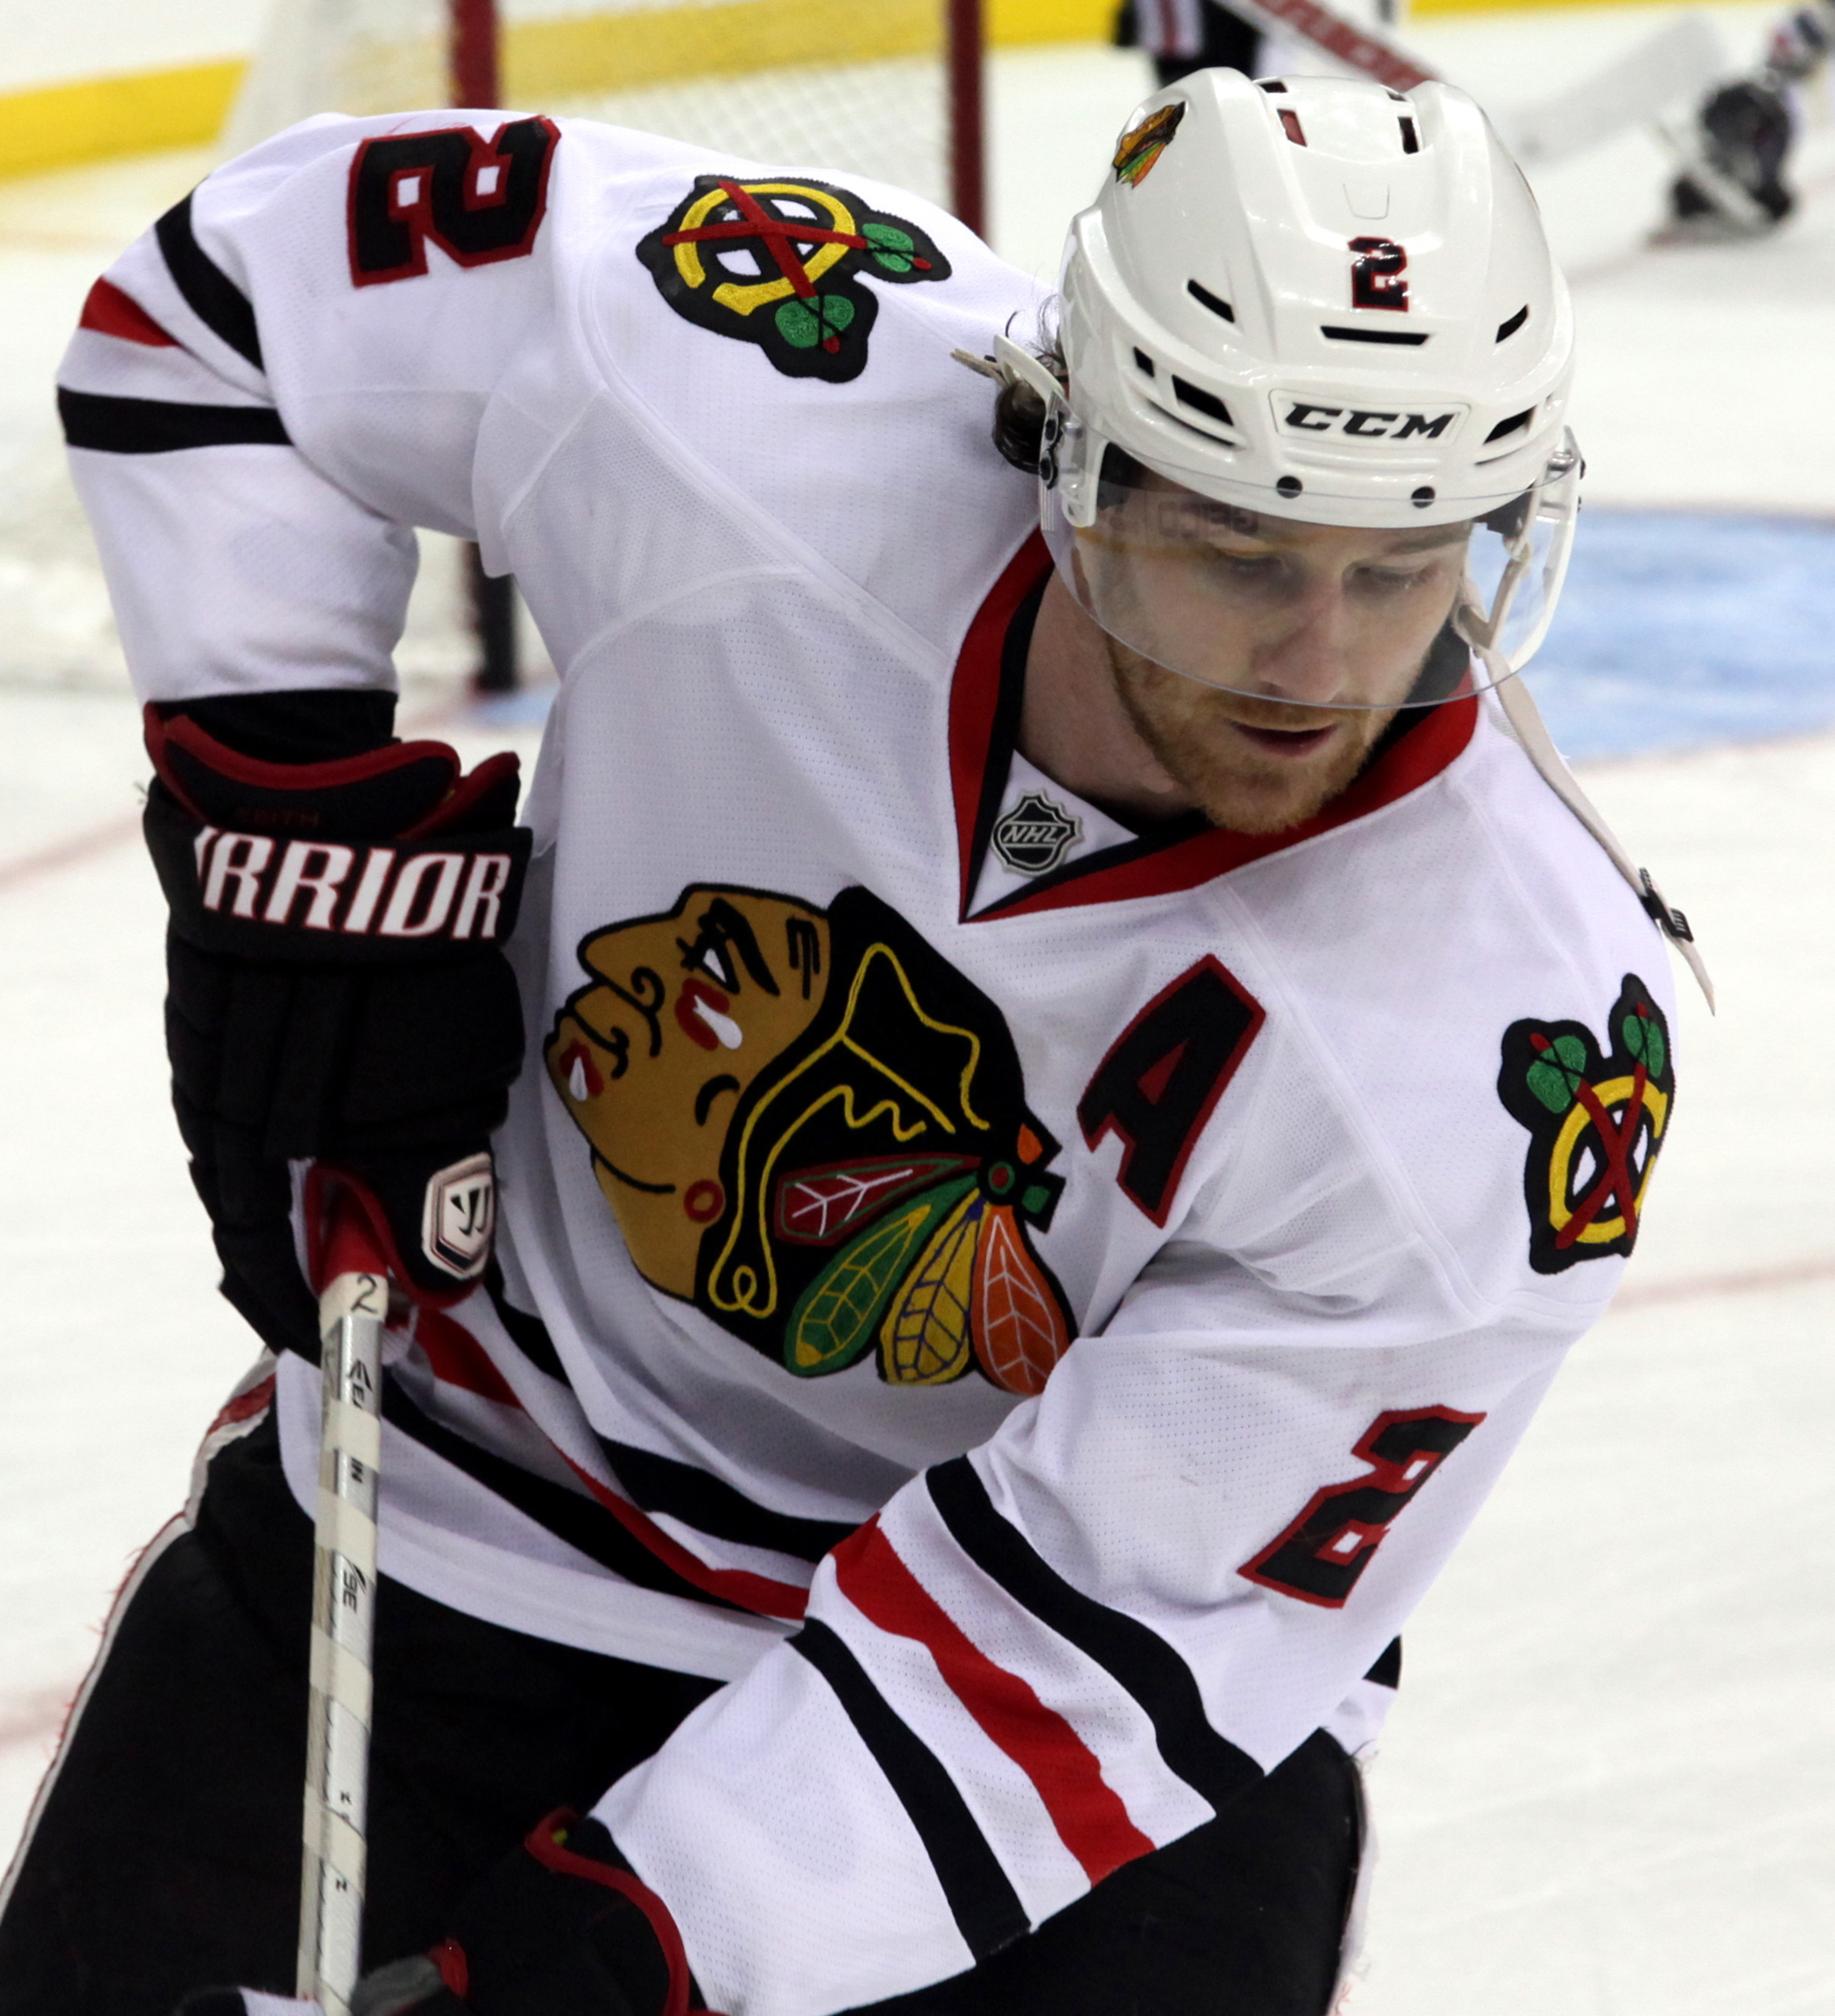 The 35-year old son of father David Keith and mother Jean Keith Duncan Keith in 2018 photo. Duncan Keith earned a 7.6 million dollar salary - leaving the net worth at 22 million in 2018